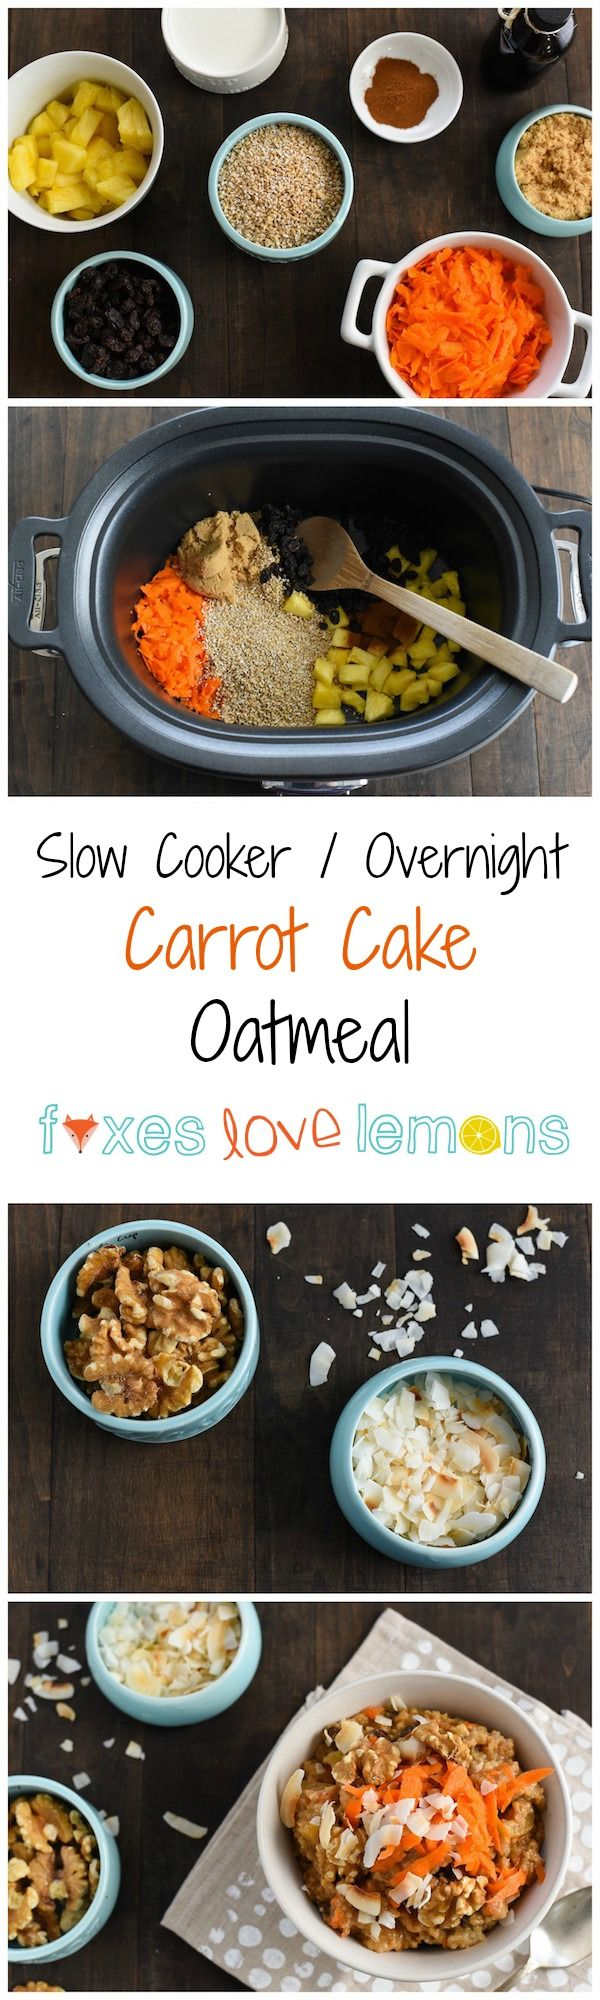 Slow Cooker Overnight Carrot Cake Oatmeal - Put the ingredients for this healthful and delicious breakfast in the crock pot and go to bed! Wake up to the beautiful smells of carrot cake! | foxeslovelemons.com